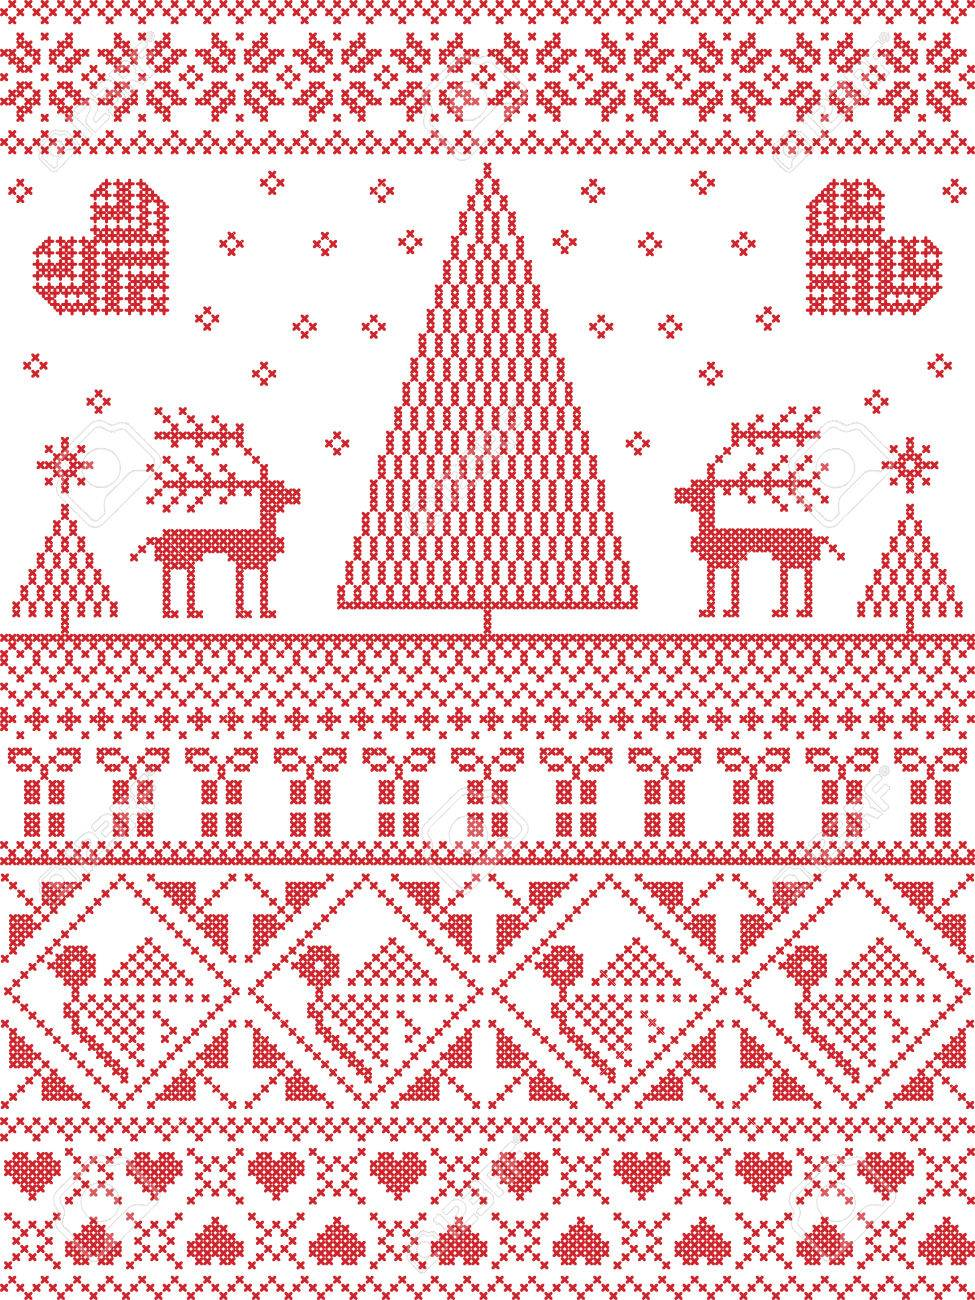 Norwegian Christmas.Scandinavian Printed Textile Style And Inspired By Norwegian